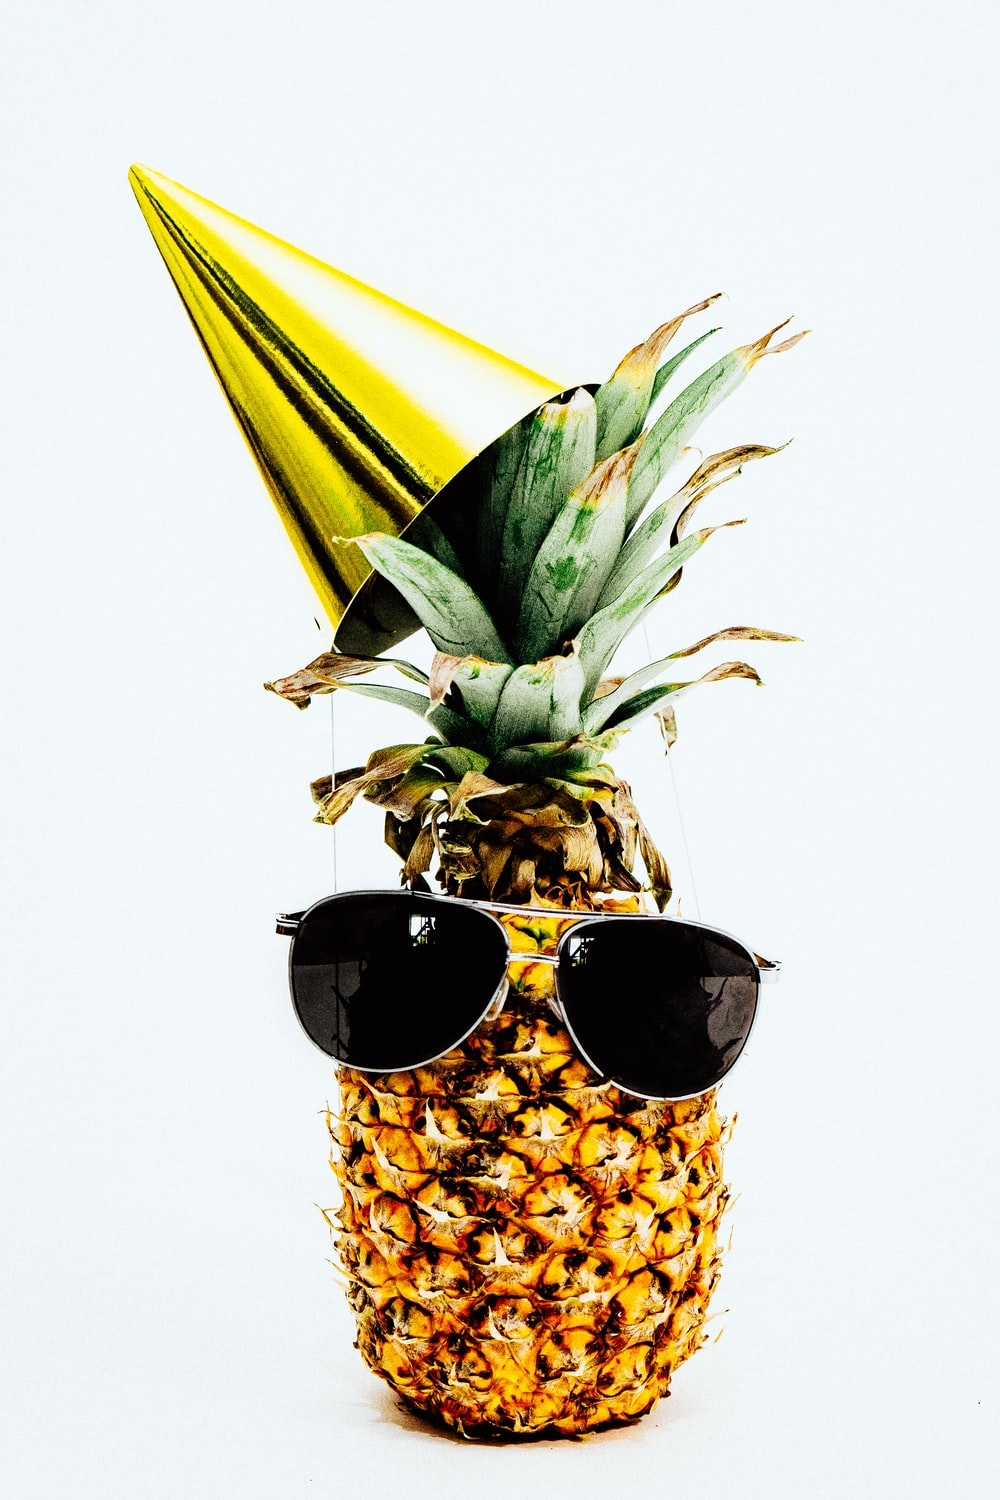 ripe pineapple with yellow cone and sunglasses